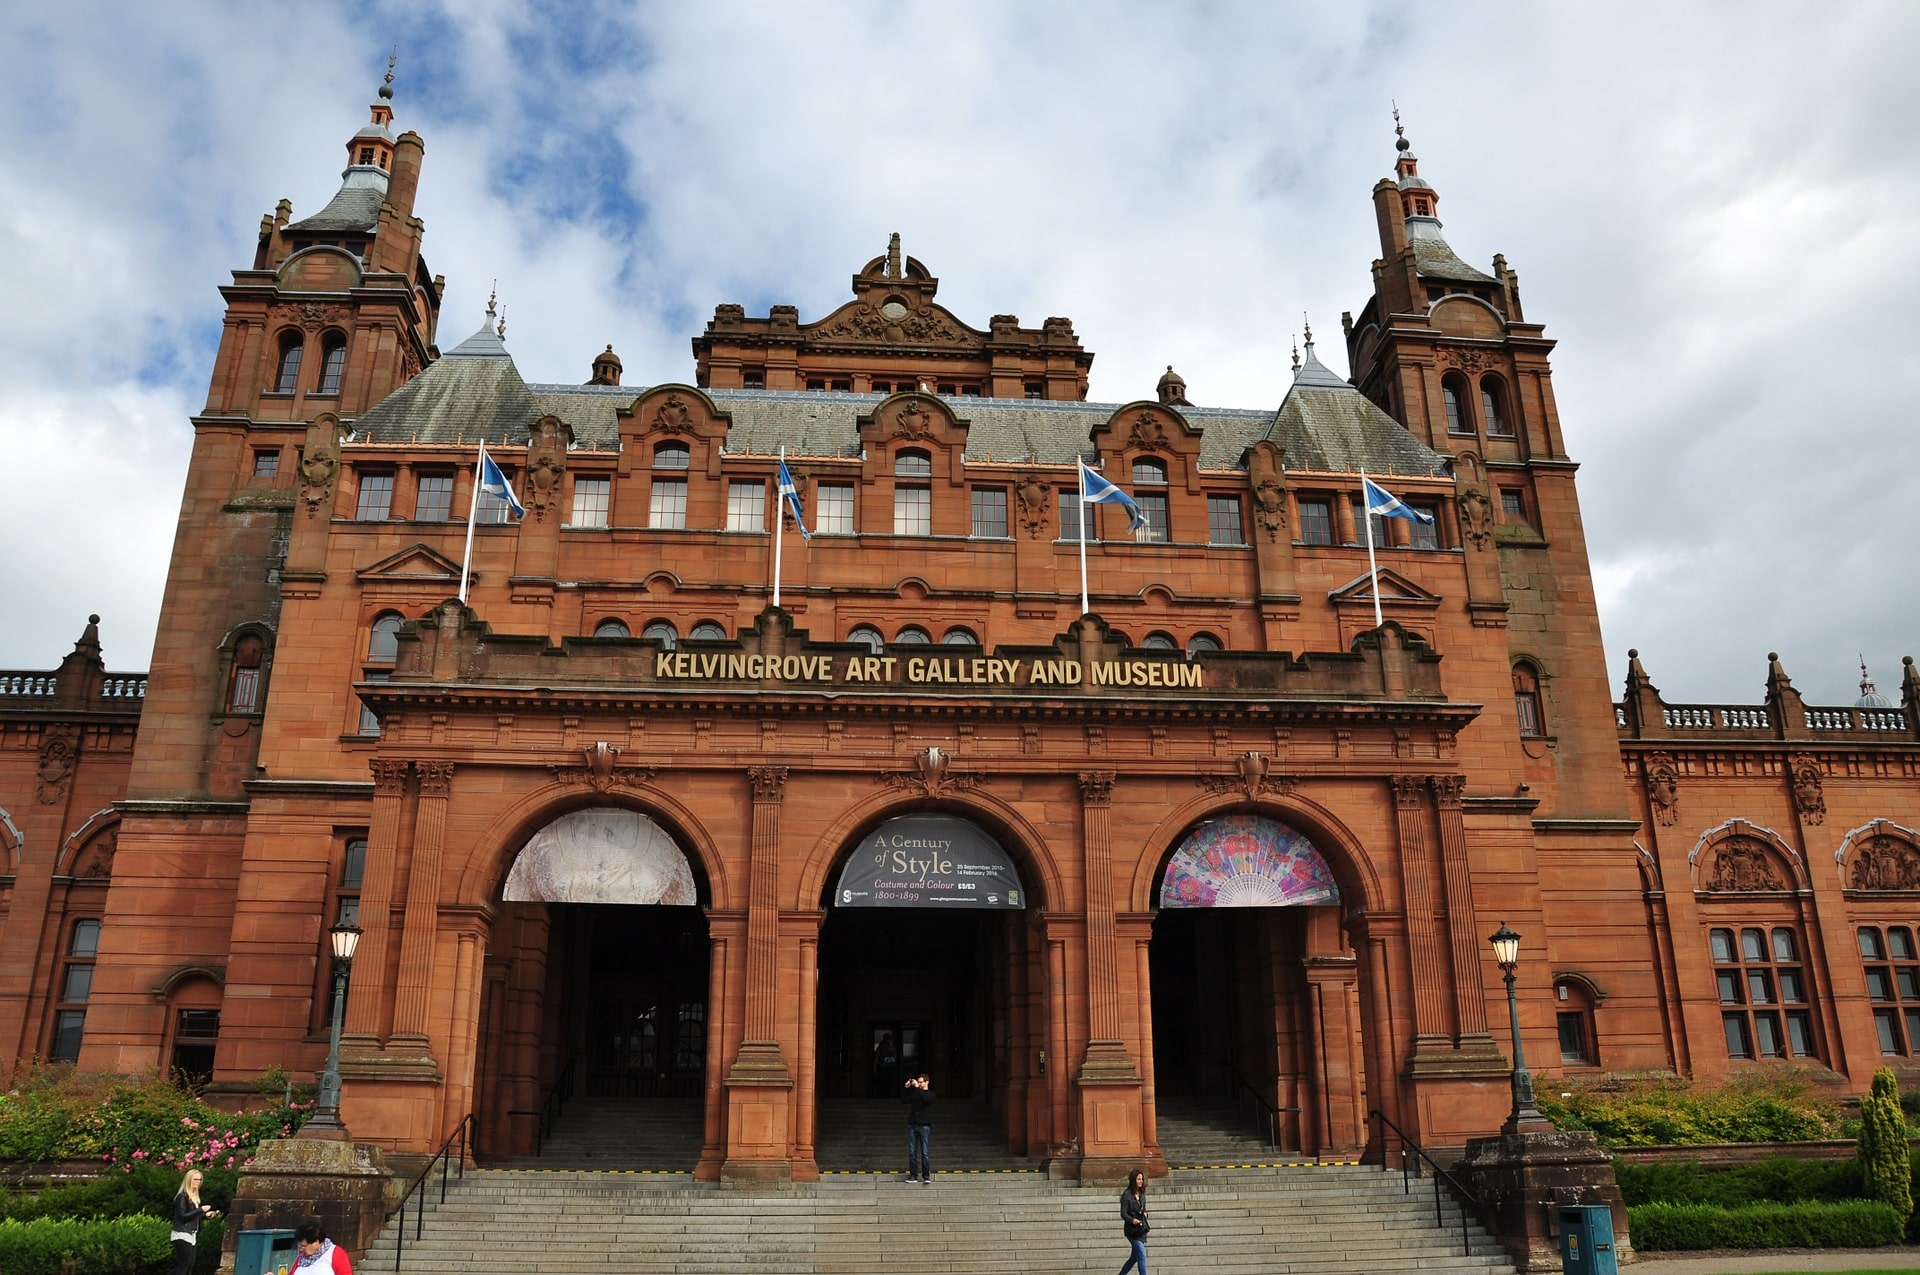 kelvingrove-art-gallery-and-museum-old-historic-building